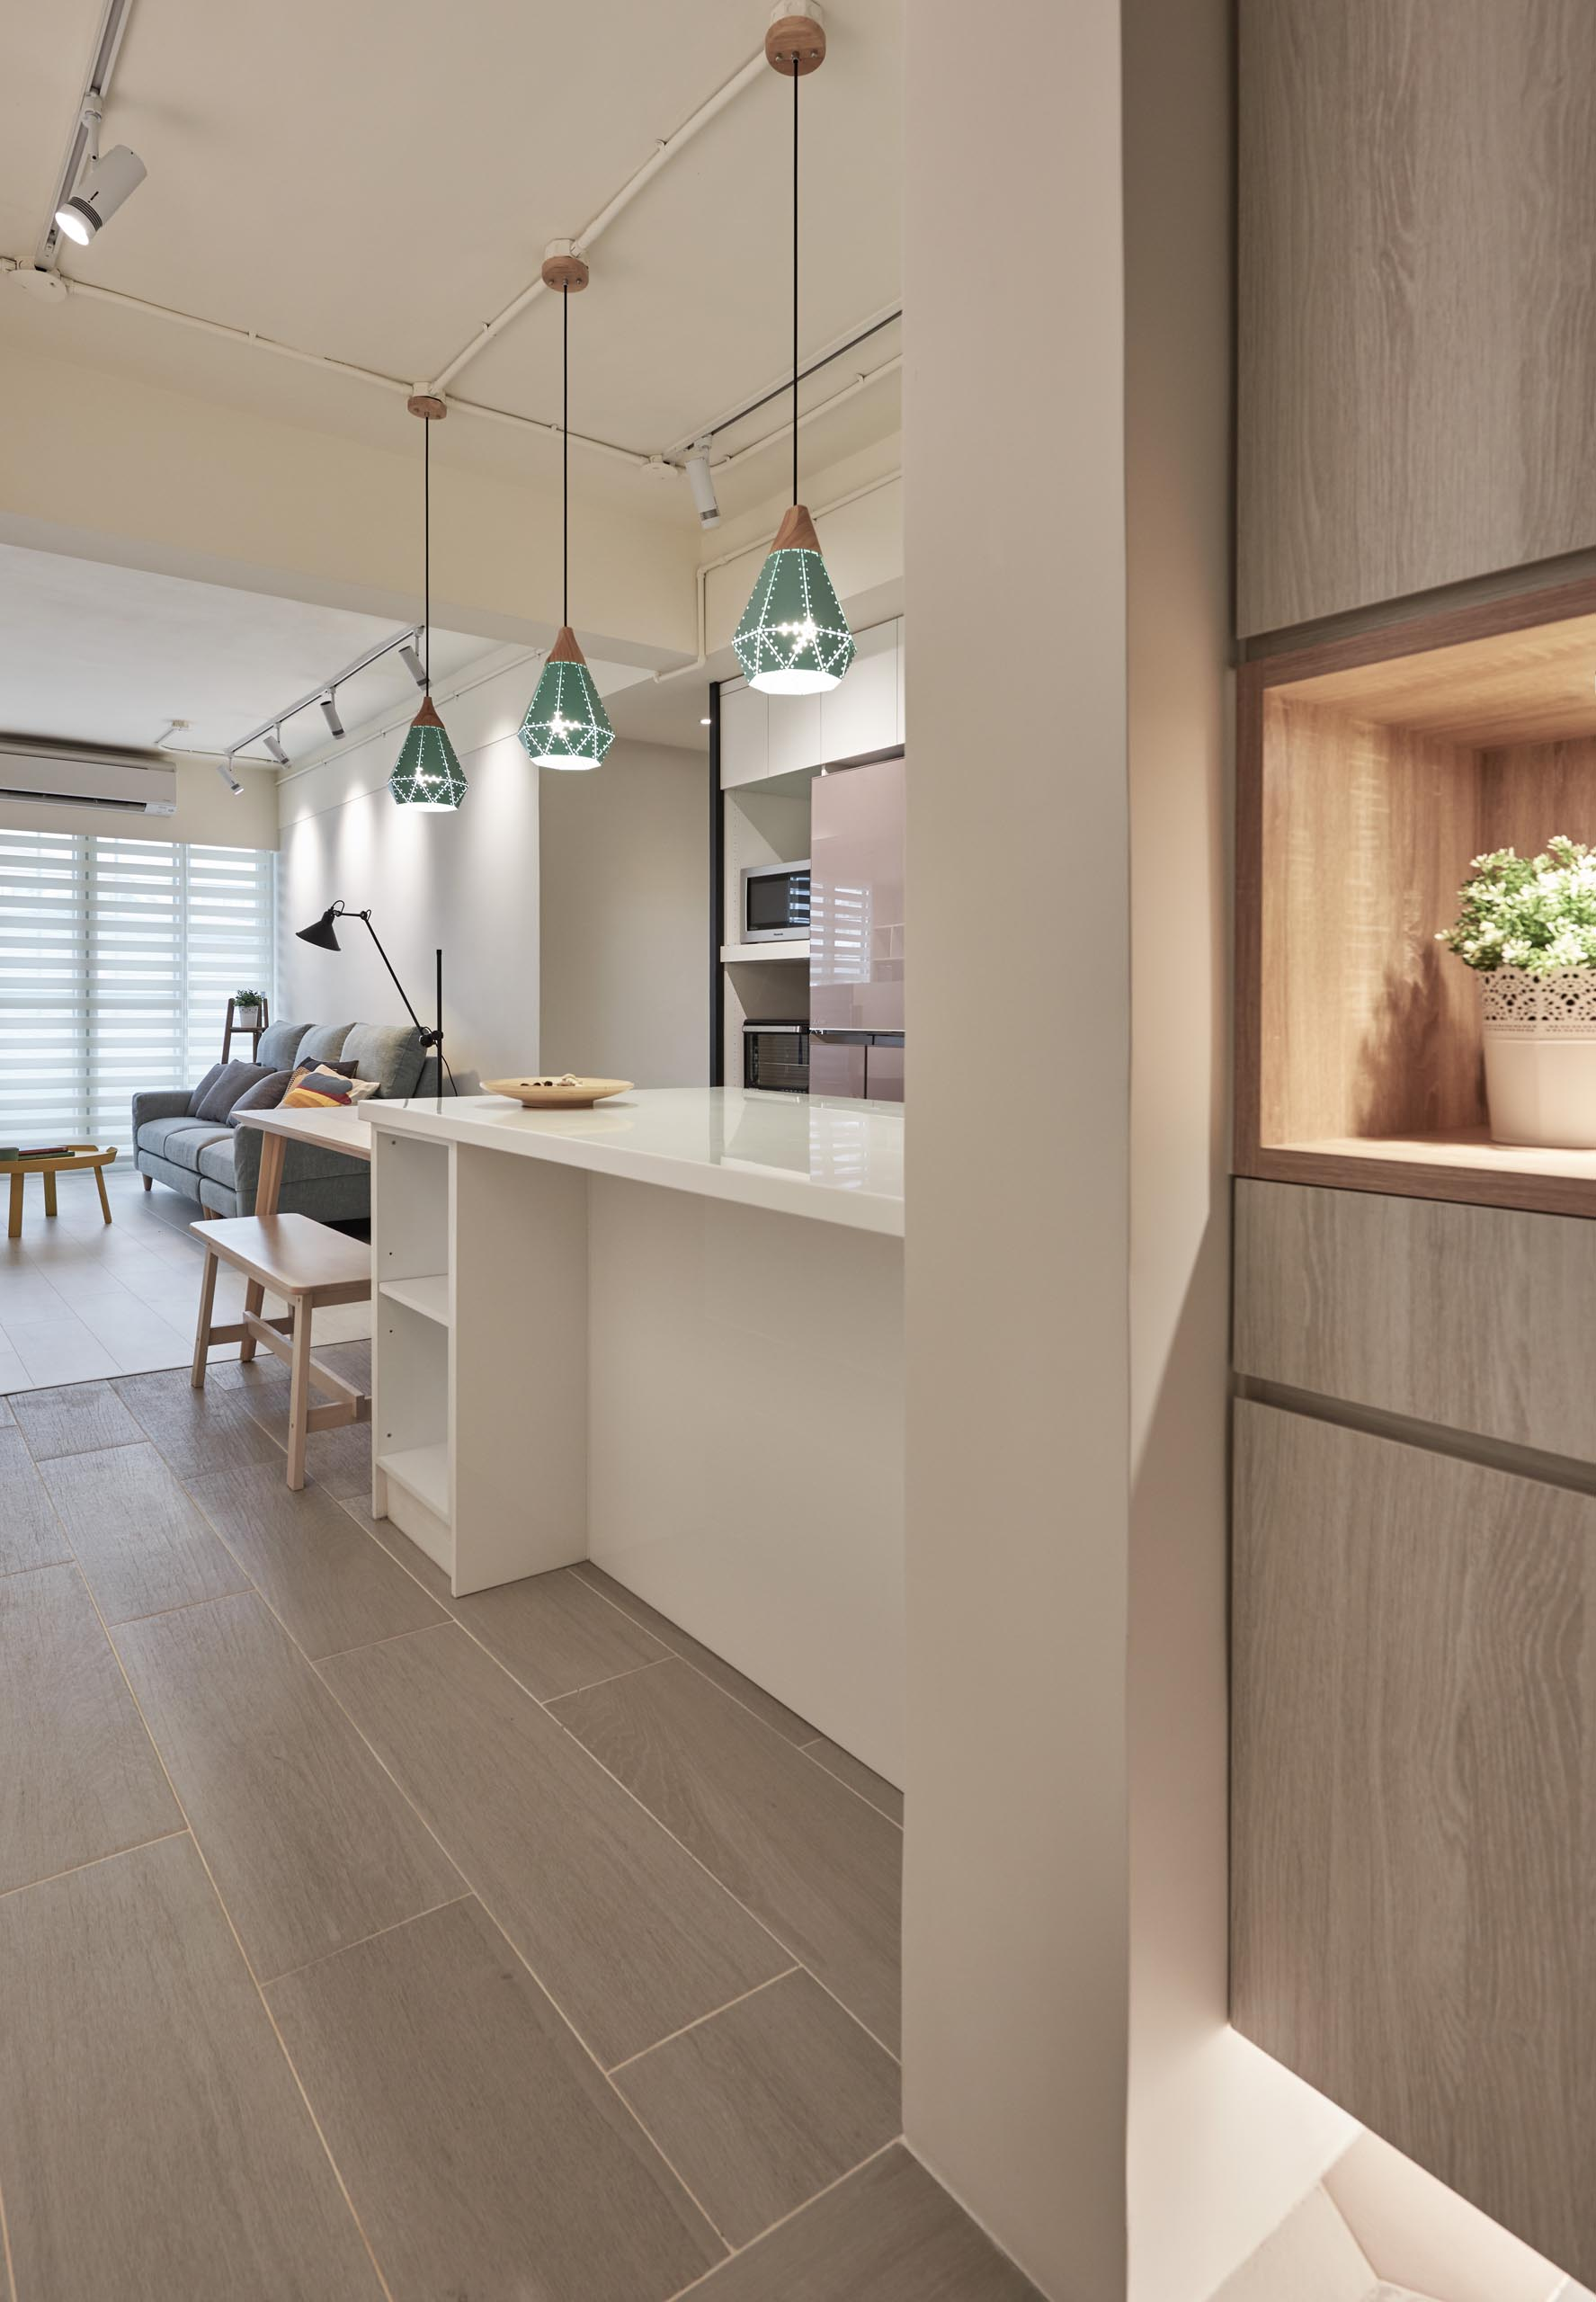 In this apartment kitchen, three pendant lights with a geometric design hang above a peninsula that connects with a dining table, while minimalist hardware-free white kitchen cabinets help to the keep the interior bright.